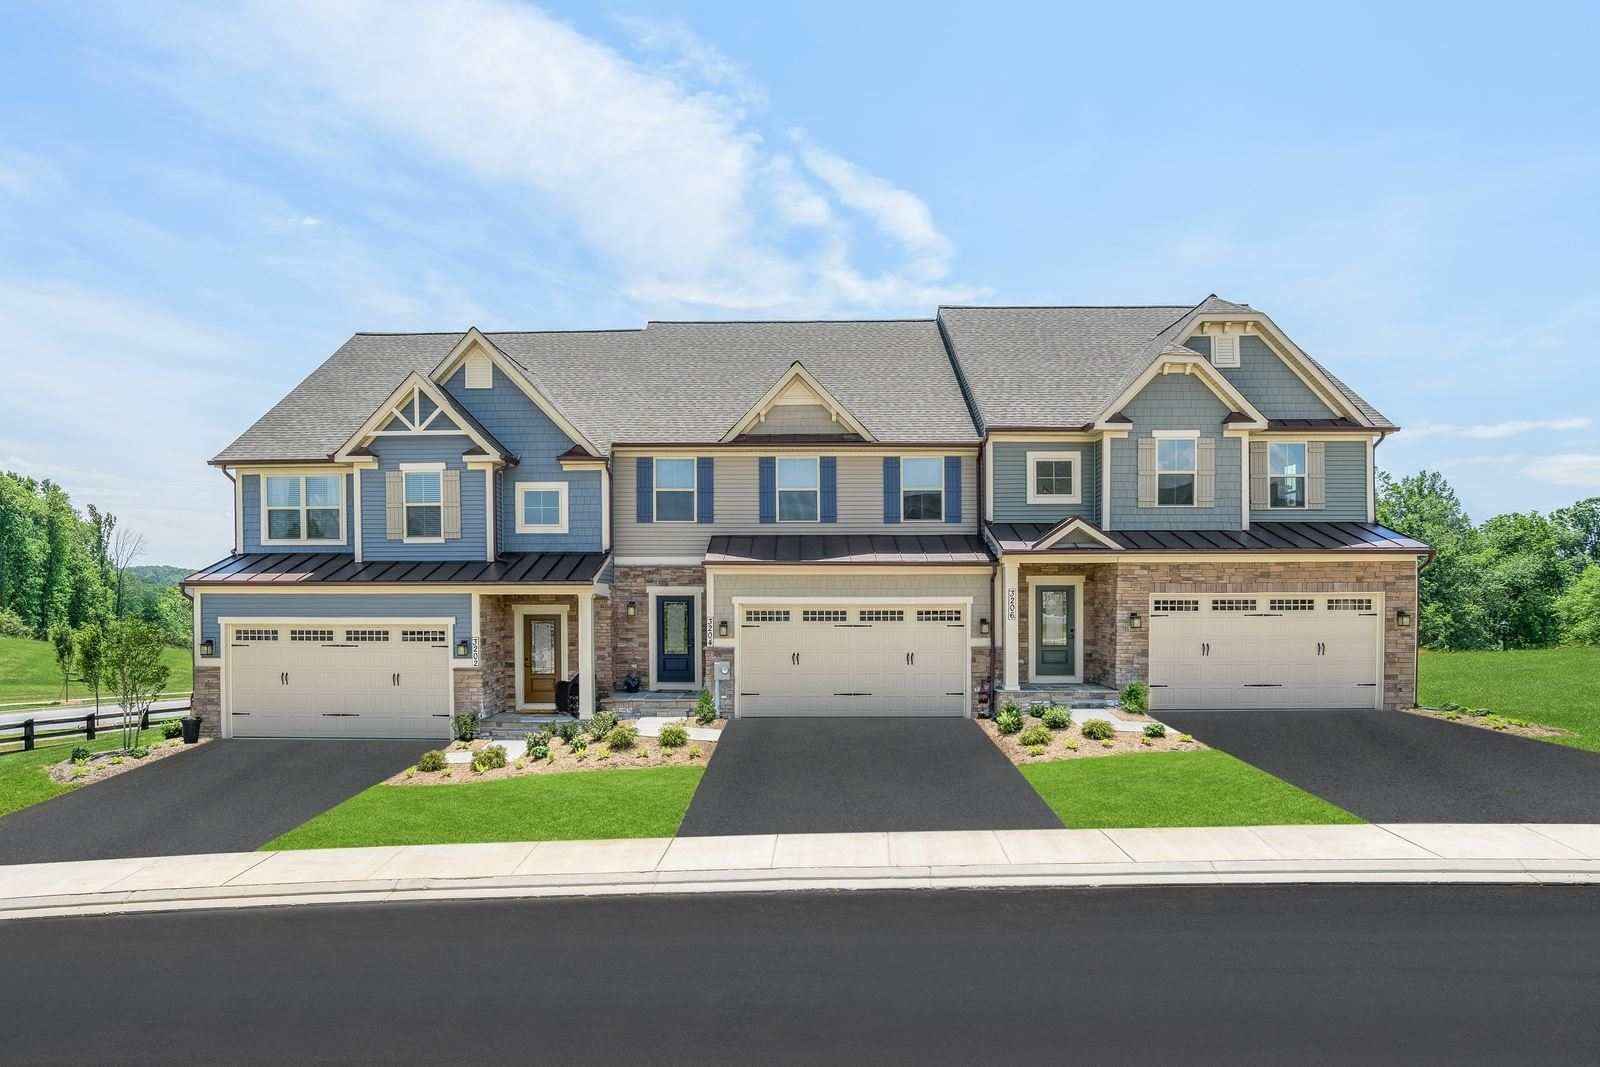 Harrington Terrace Villas In Frederick Md Prices Plans Availability